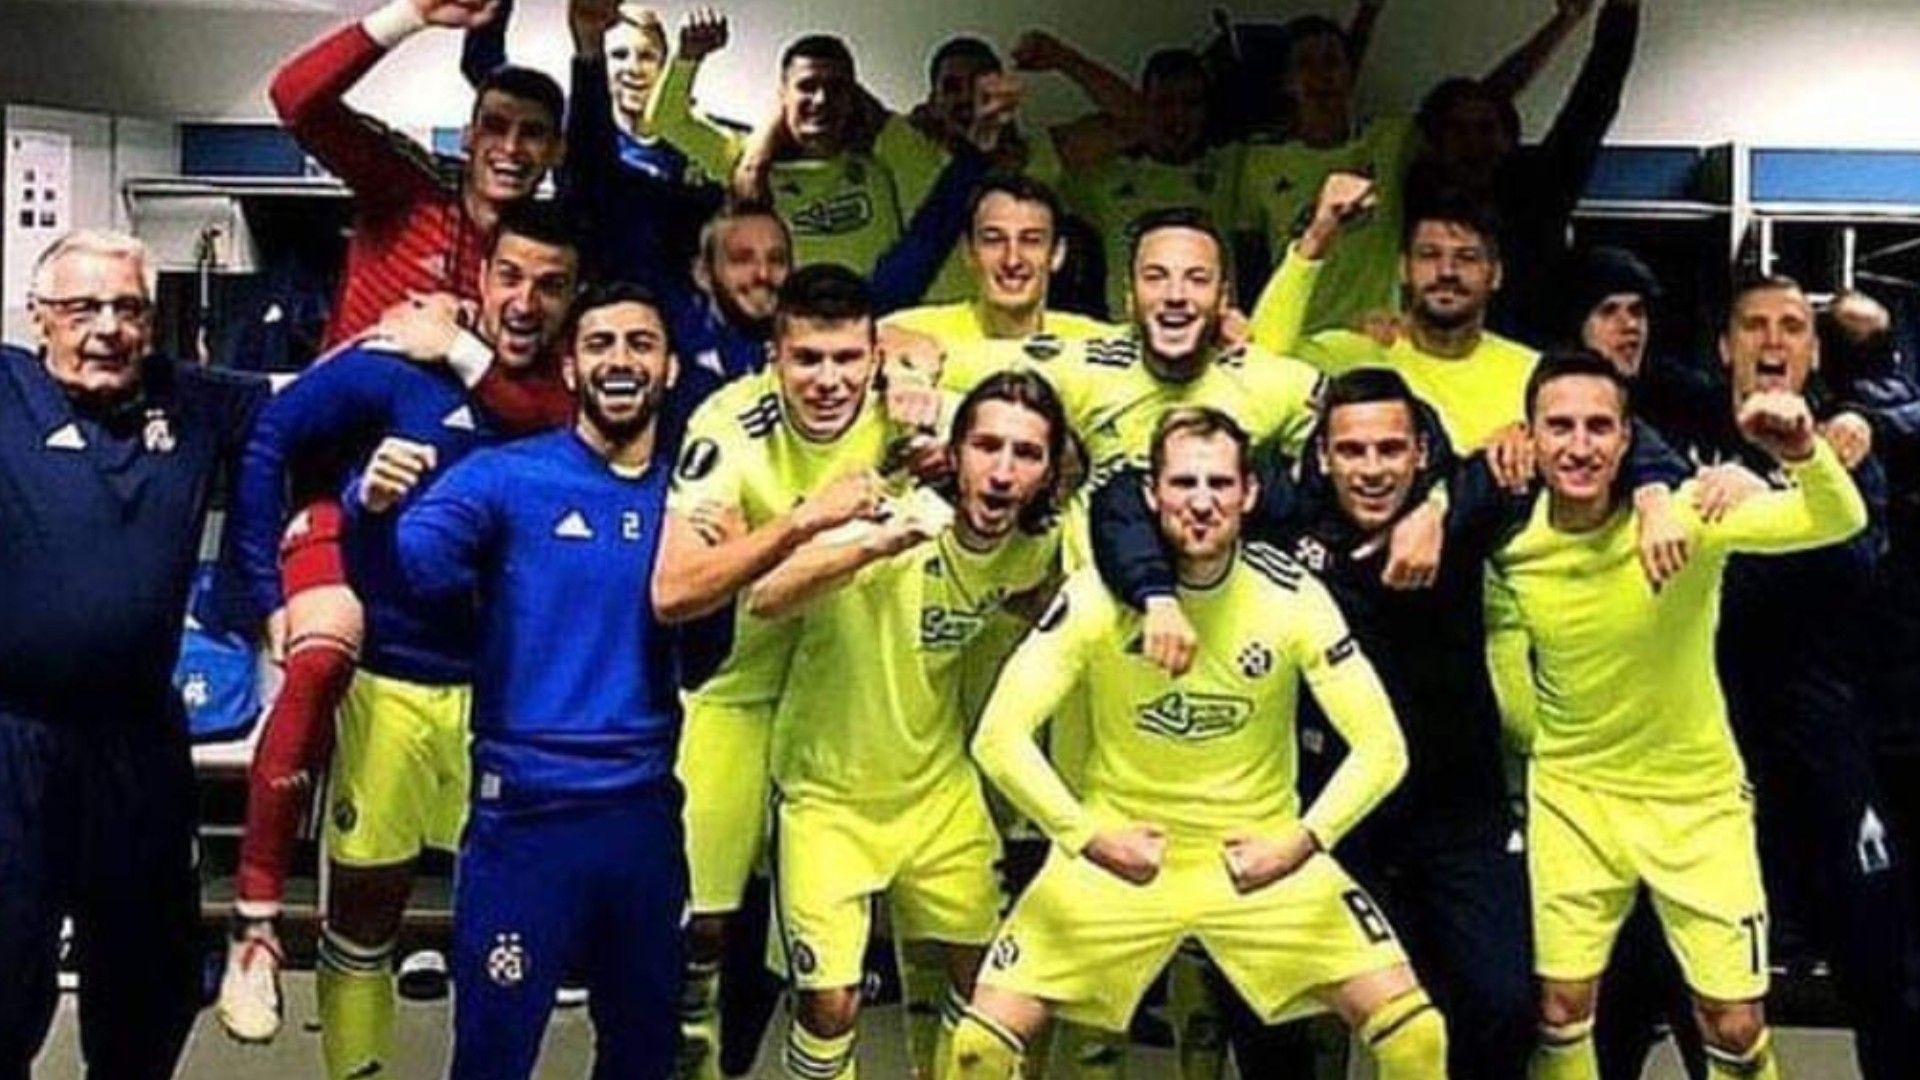 Pin By Croatia Football News On Dinamo Zagreb Europa League 2018 2019 League Europa League Zagreb